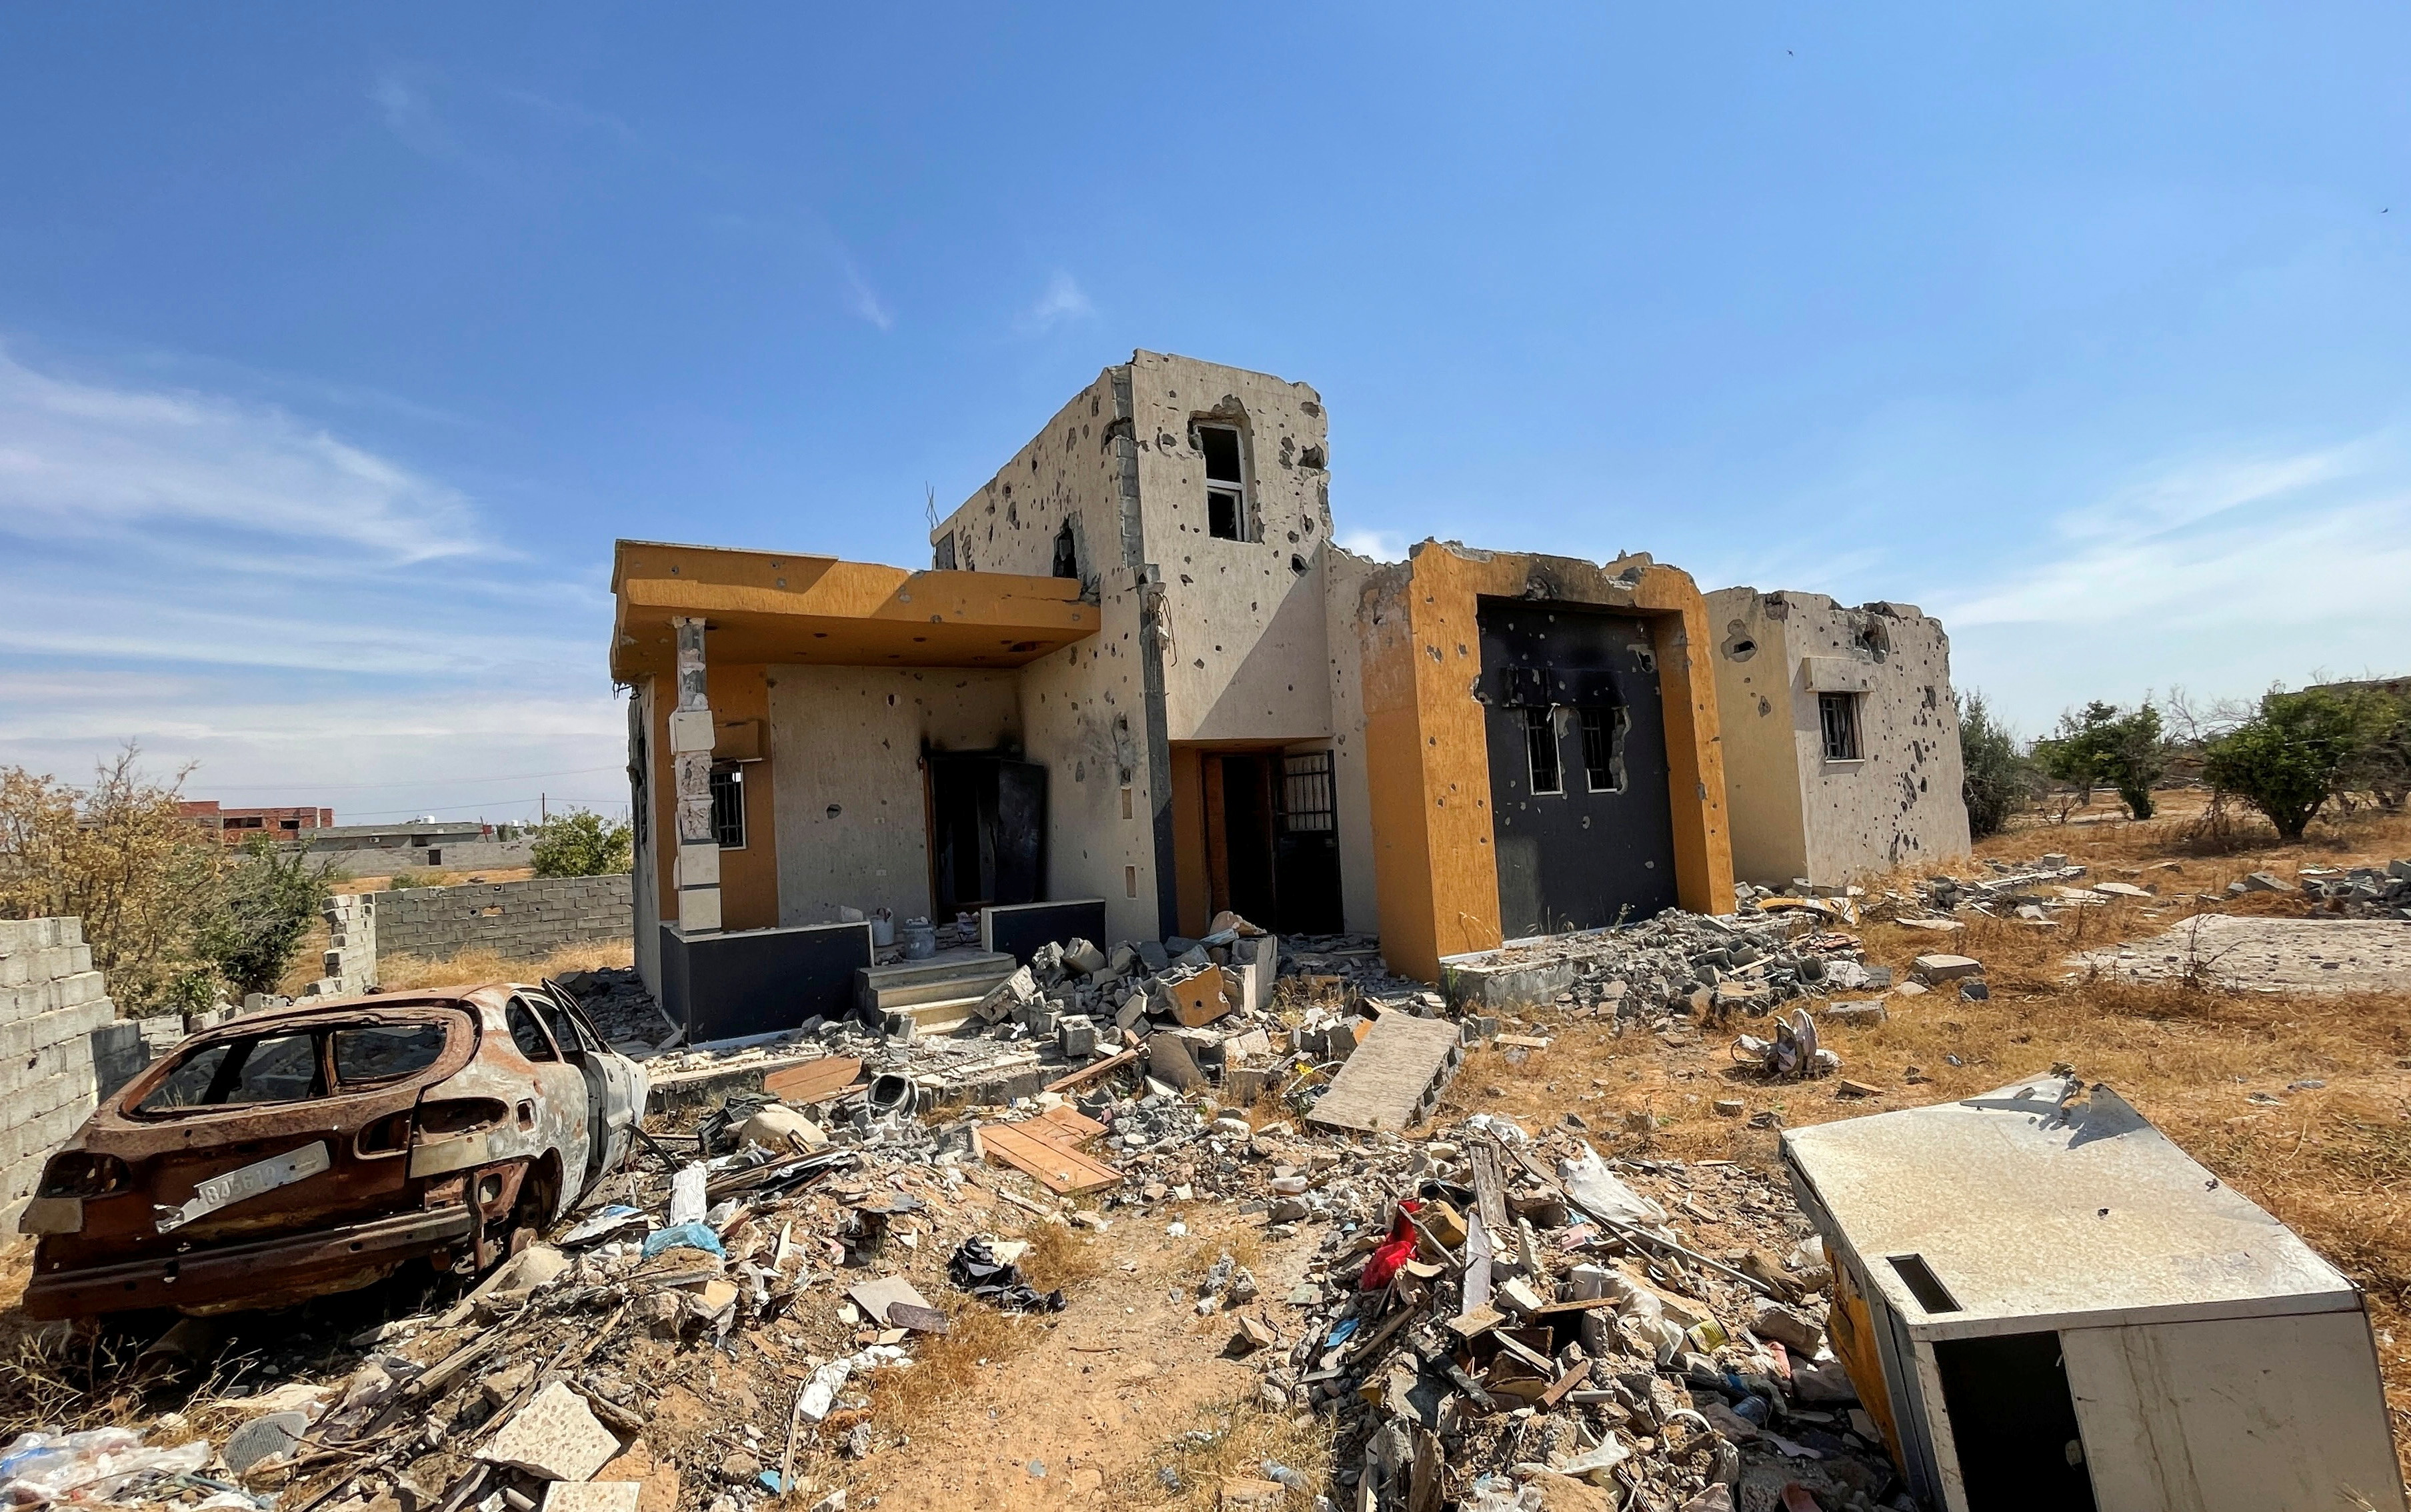 A damaged house is pictured in Tripoli, Libya June 9, 2021. Picture taken June 9, 2021. REUTERS/Hazem Ahmed